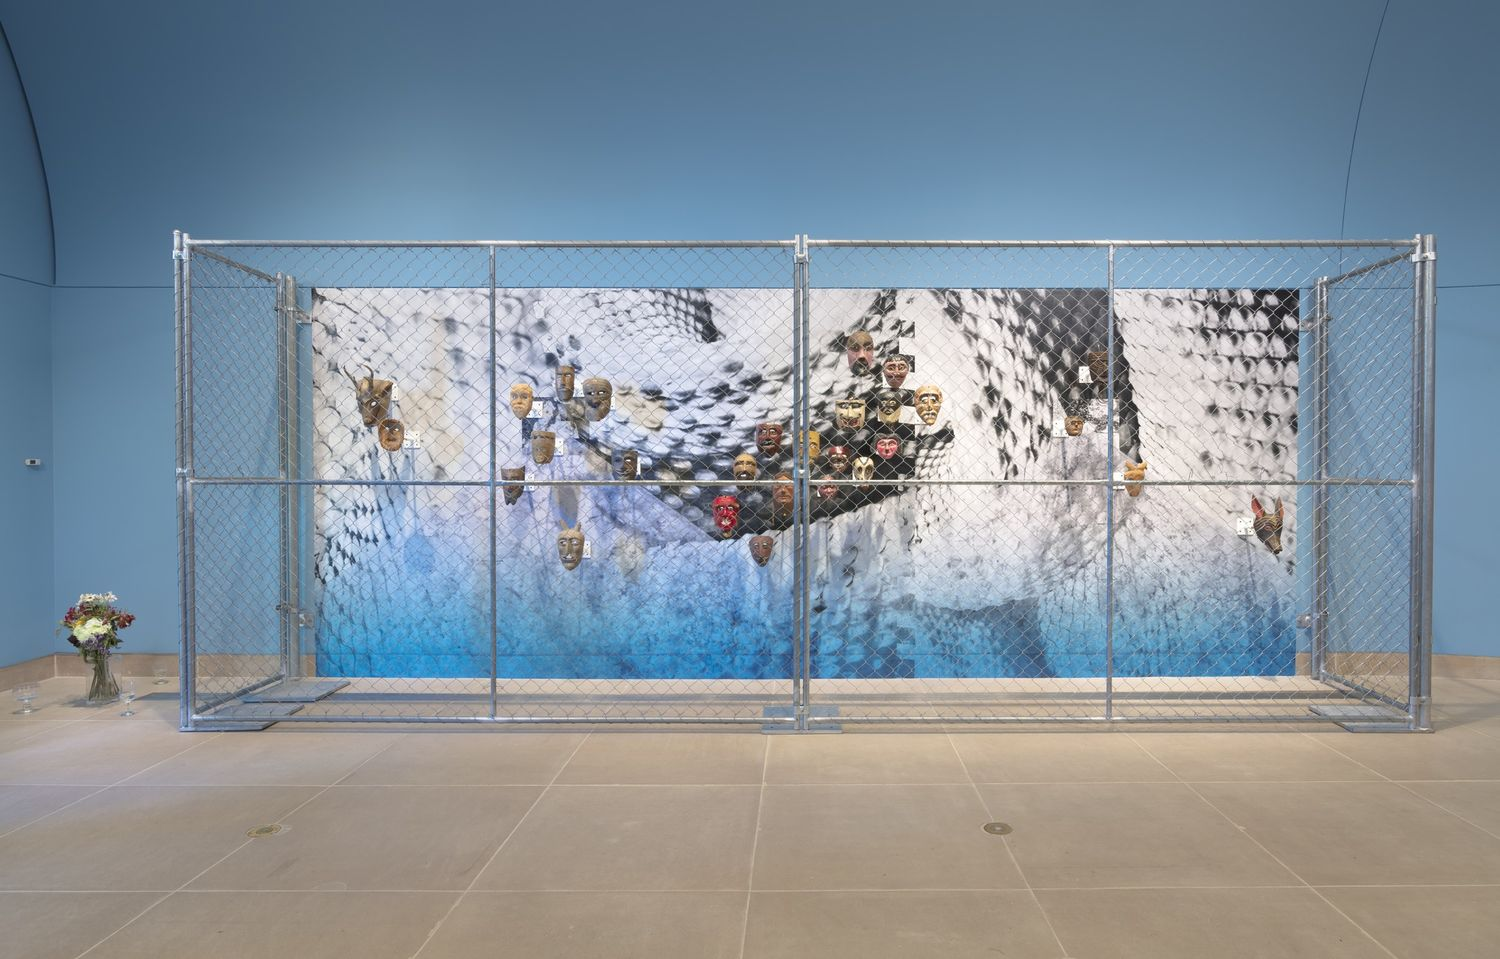 A chainlink fence around a display of masks, set against a snakeskin pattern